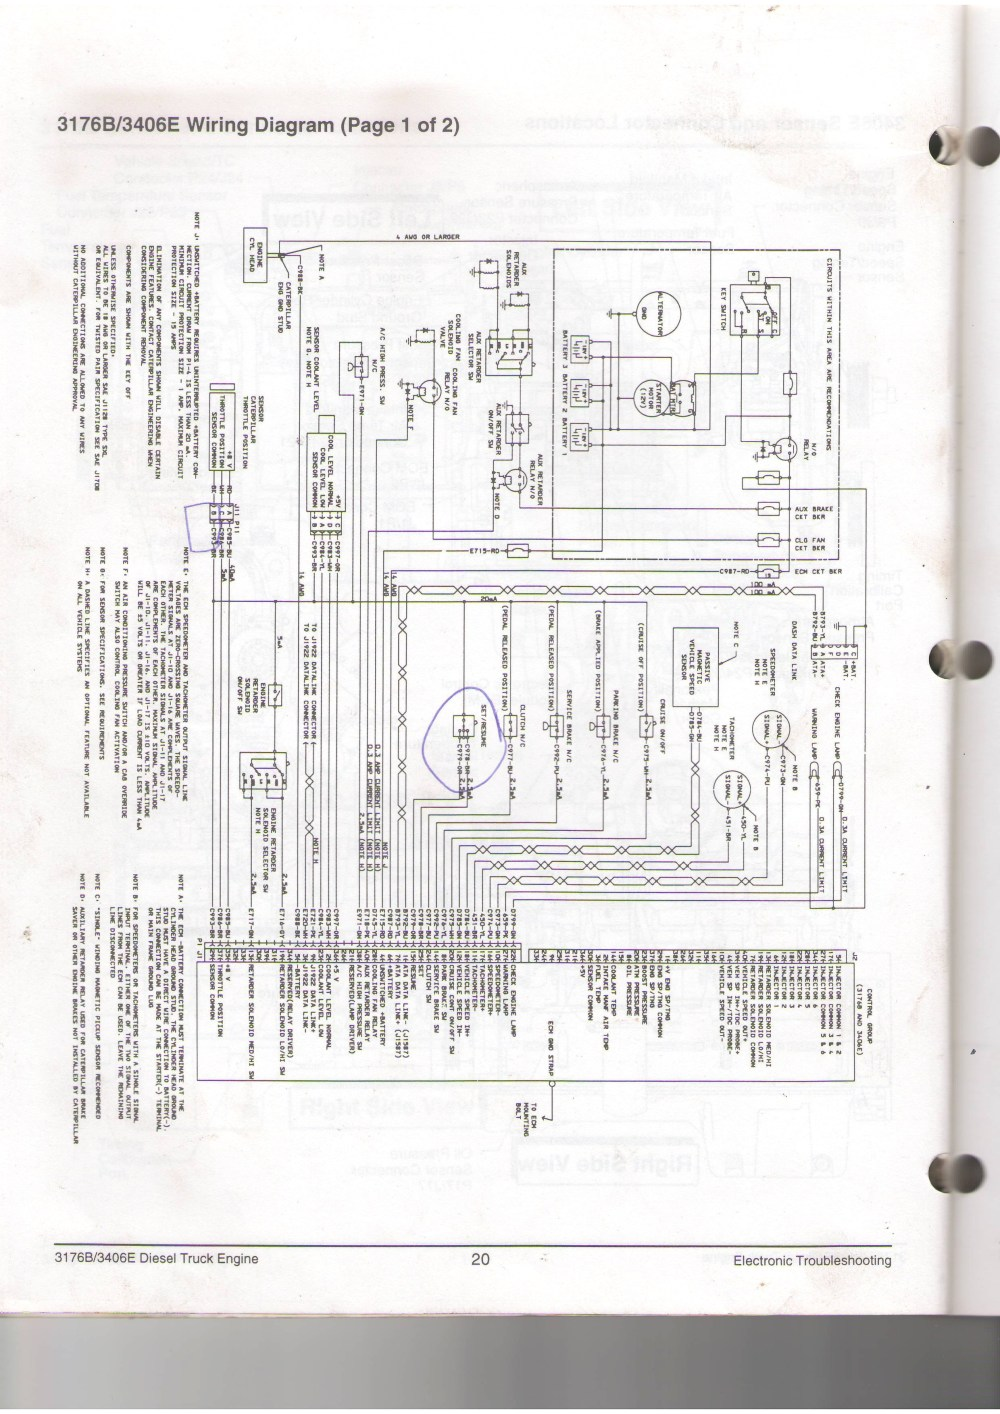 medium resolution of cat 3126 engine diagram wiring diagram page cat 3126 engine sensor diagram